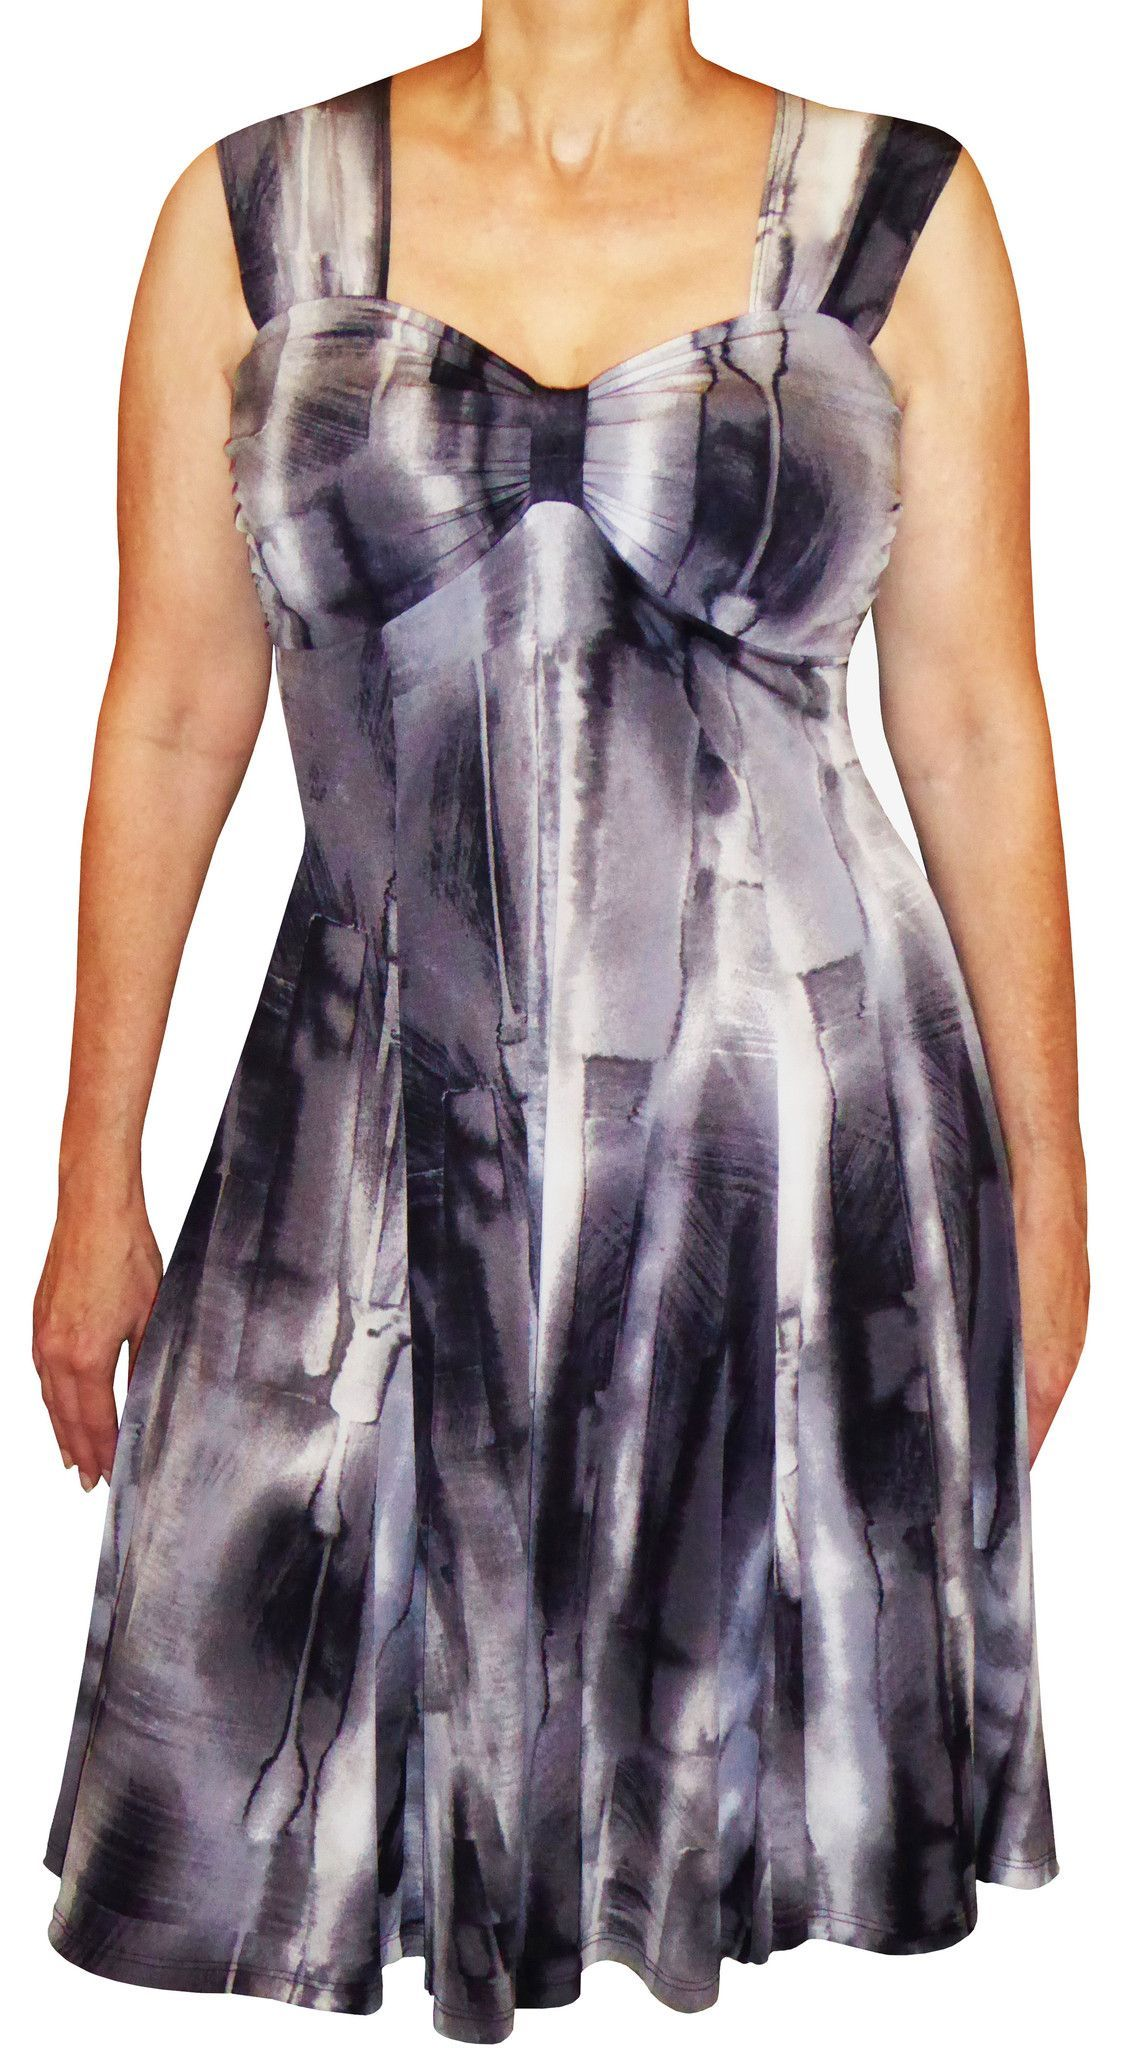 a7a94b4562a Plus Size Clothing Black White Gray Slimming Cocktail Dress Made in ...